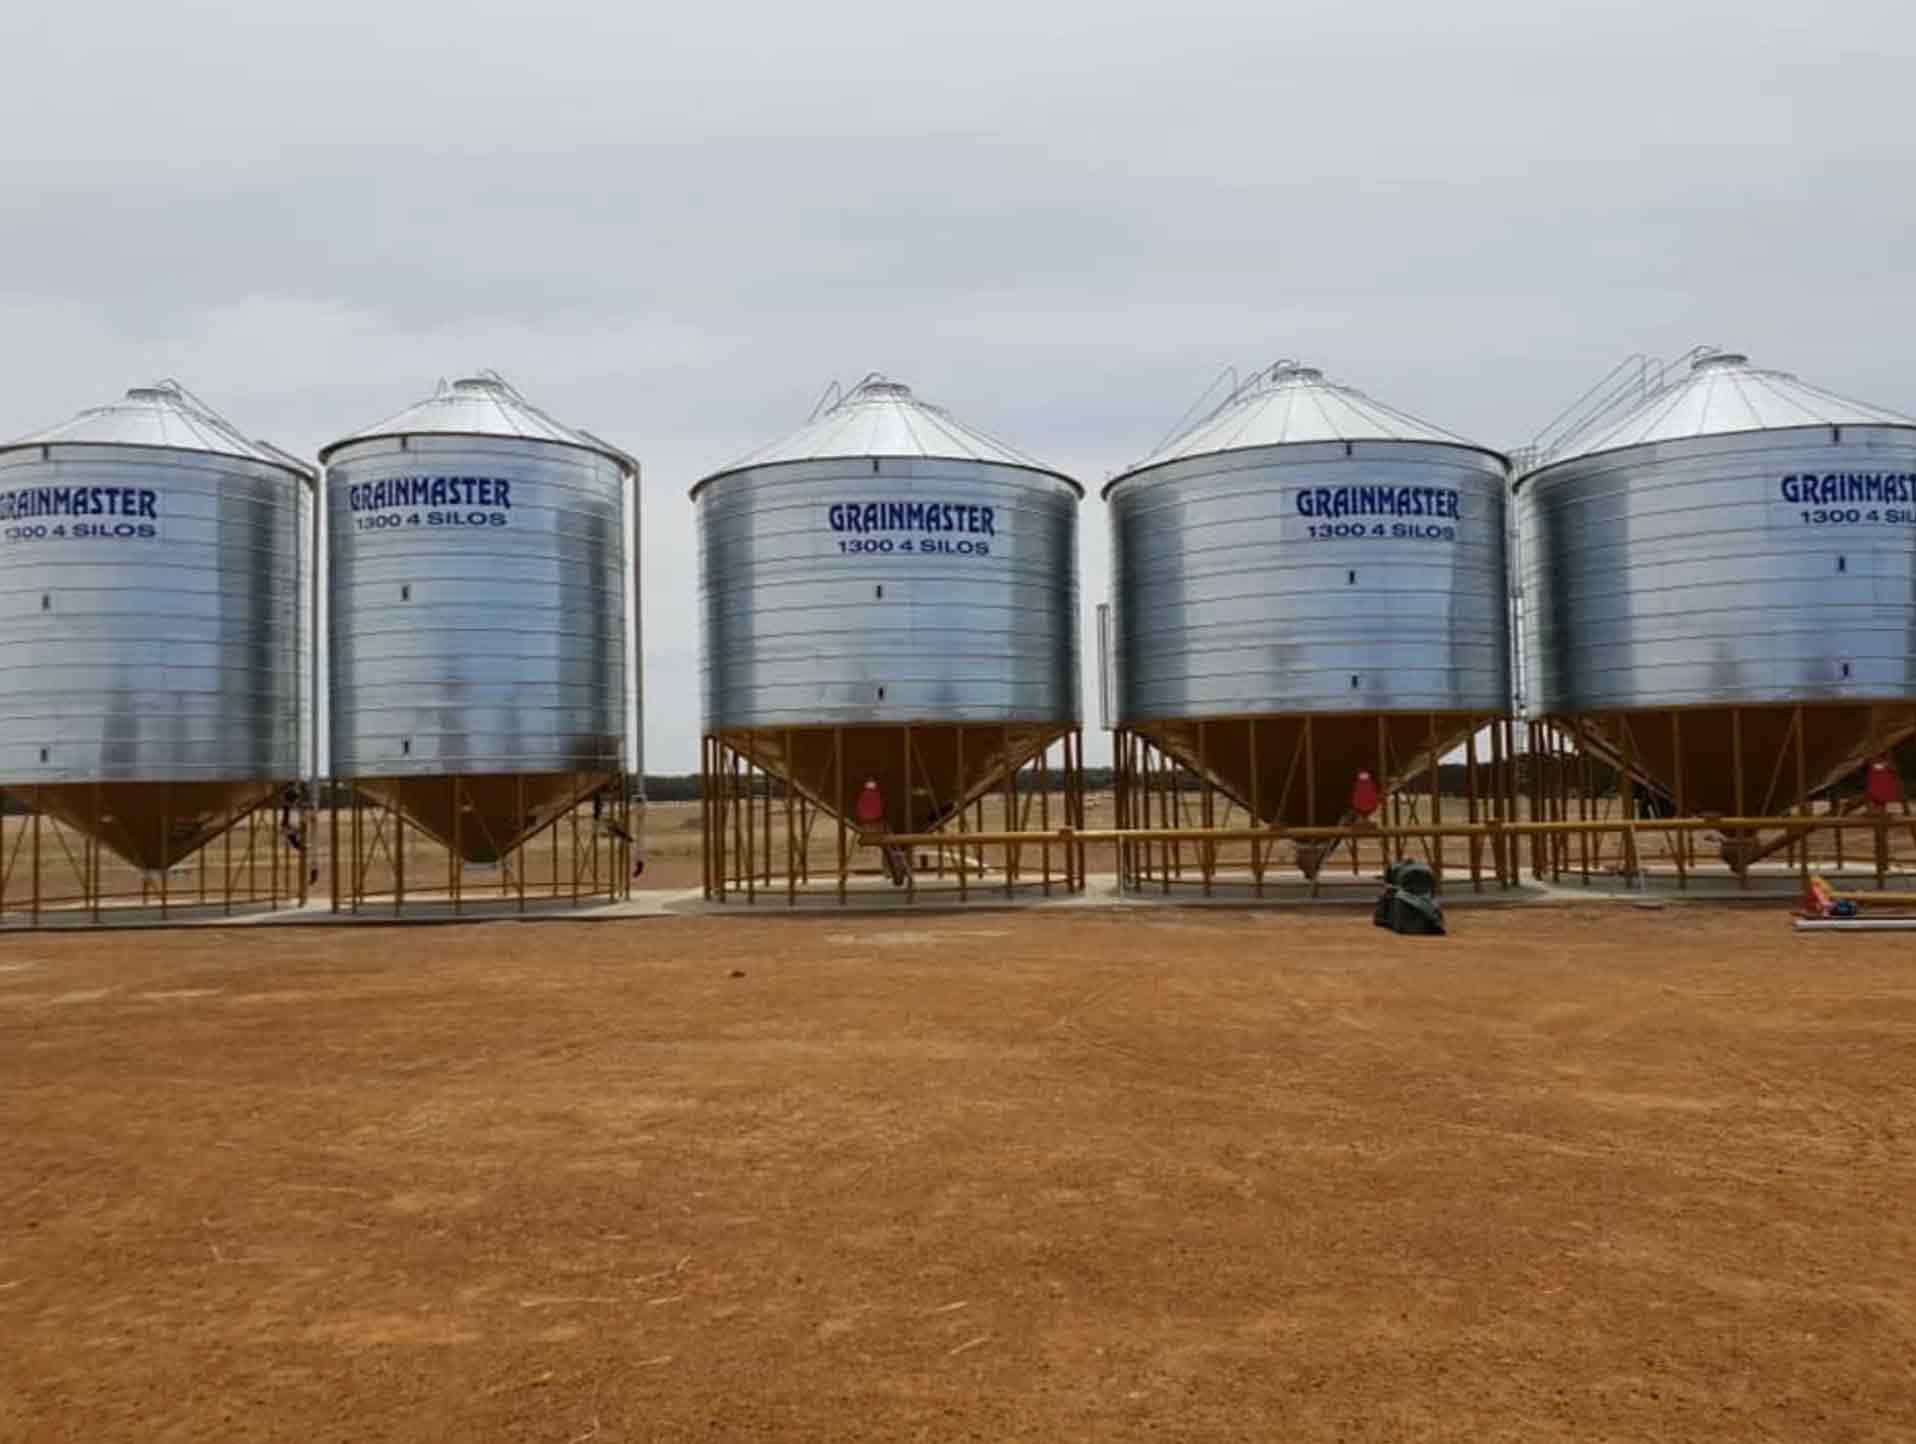 5 x GrainMaster Silos for a client on Kangaroo Island